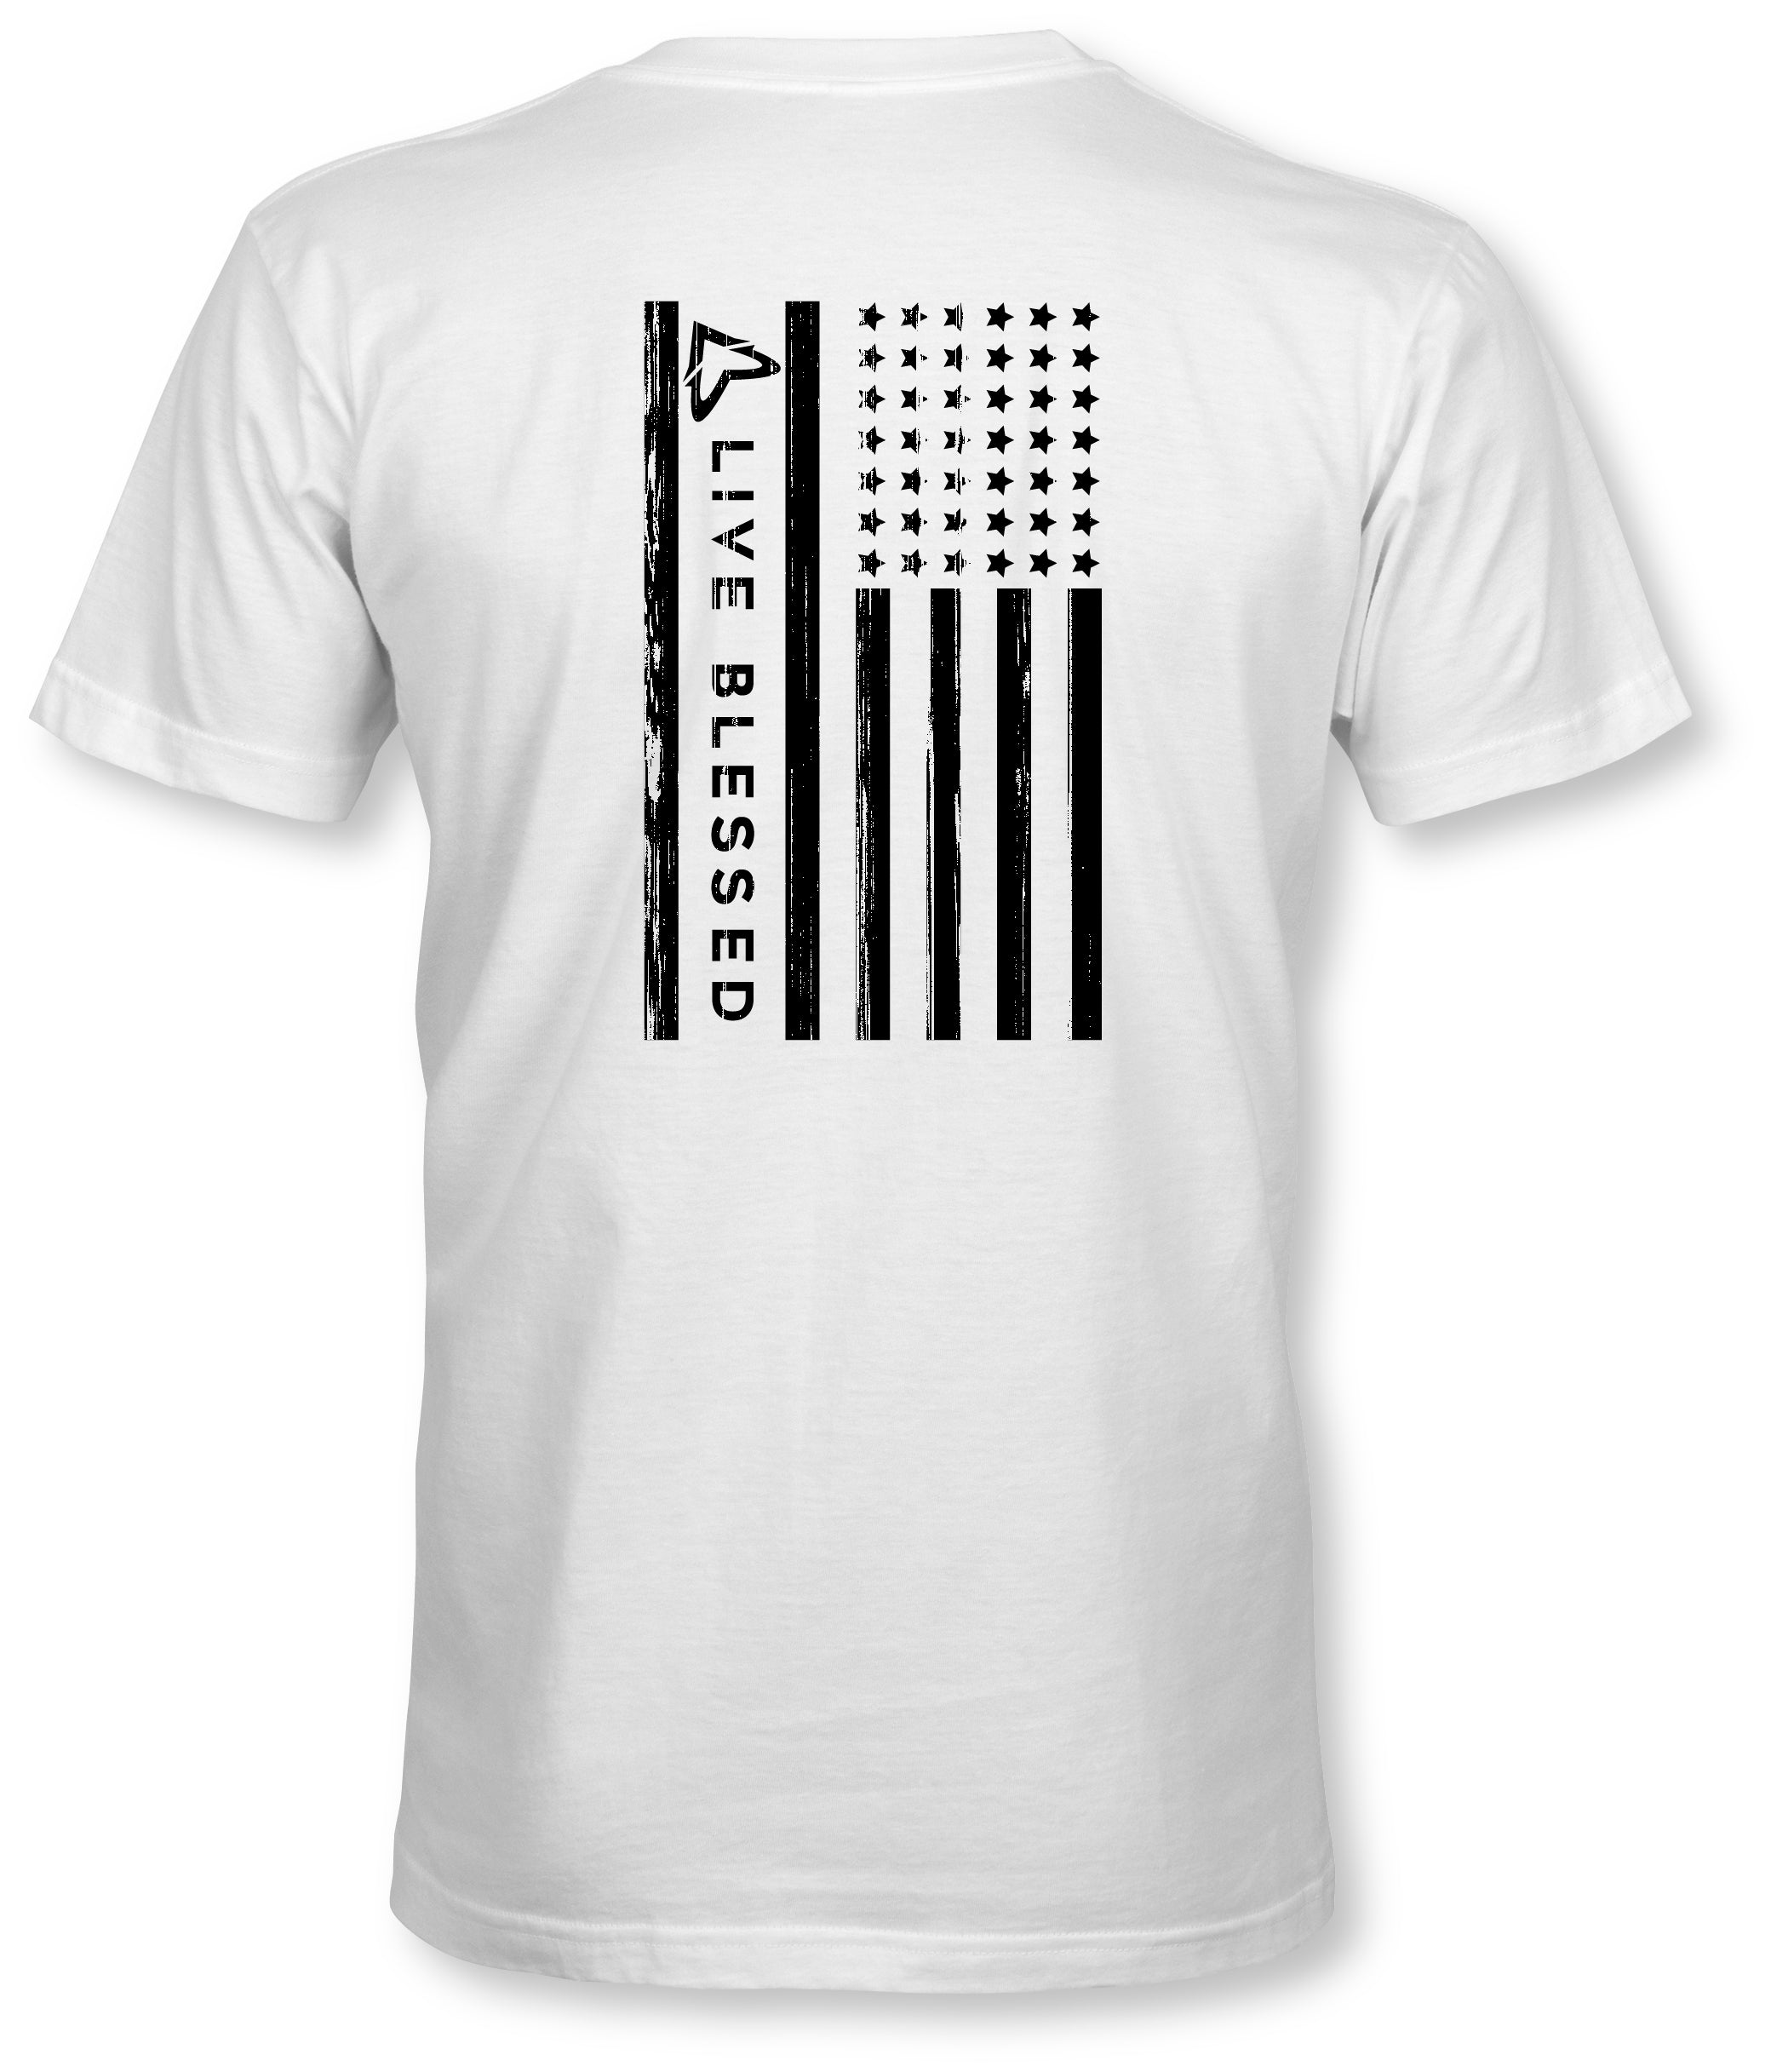 MEN'S LVBLSD FLAG - WHITE TEE